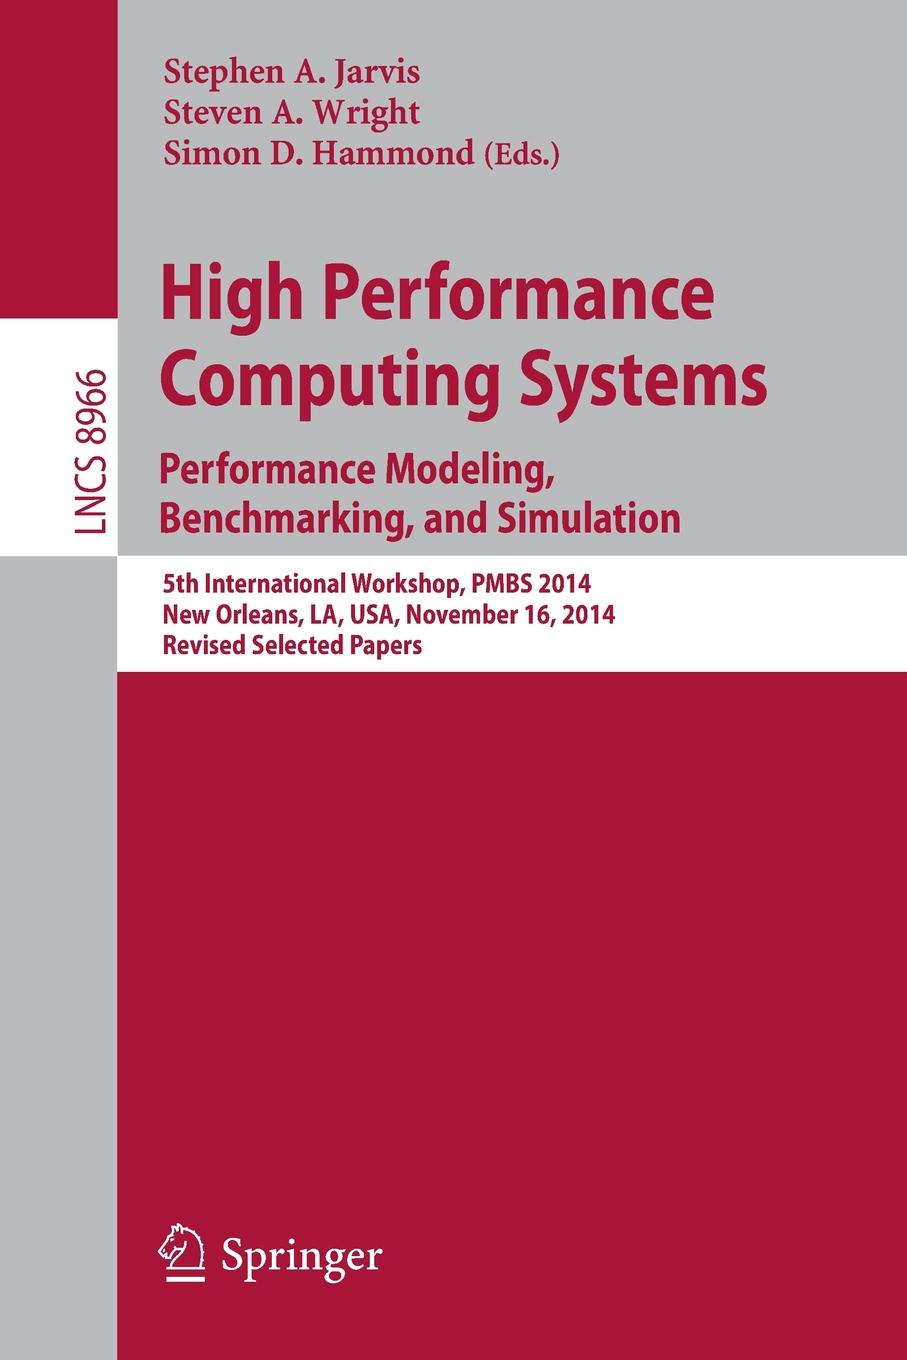 High Performance Computing Systems Performance Modeling Benchmarking and Simulation 5th International Workshop PMBS 2014 New Orleans LA USA November 16 2014 Revised Selected Papers